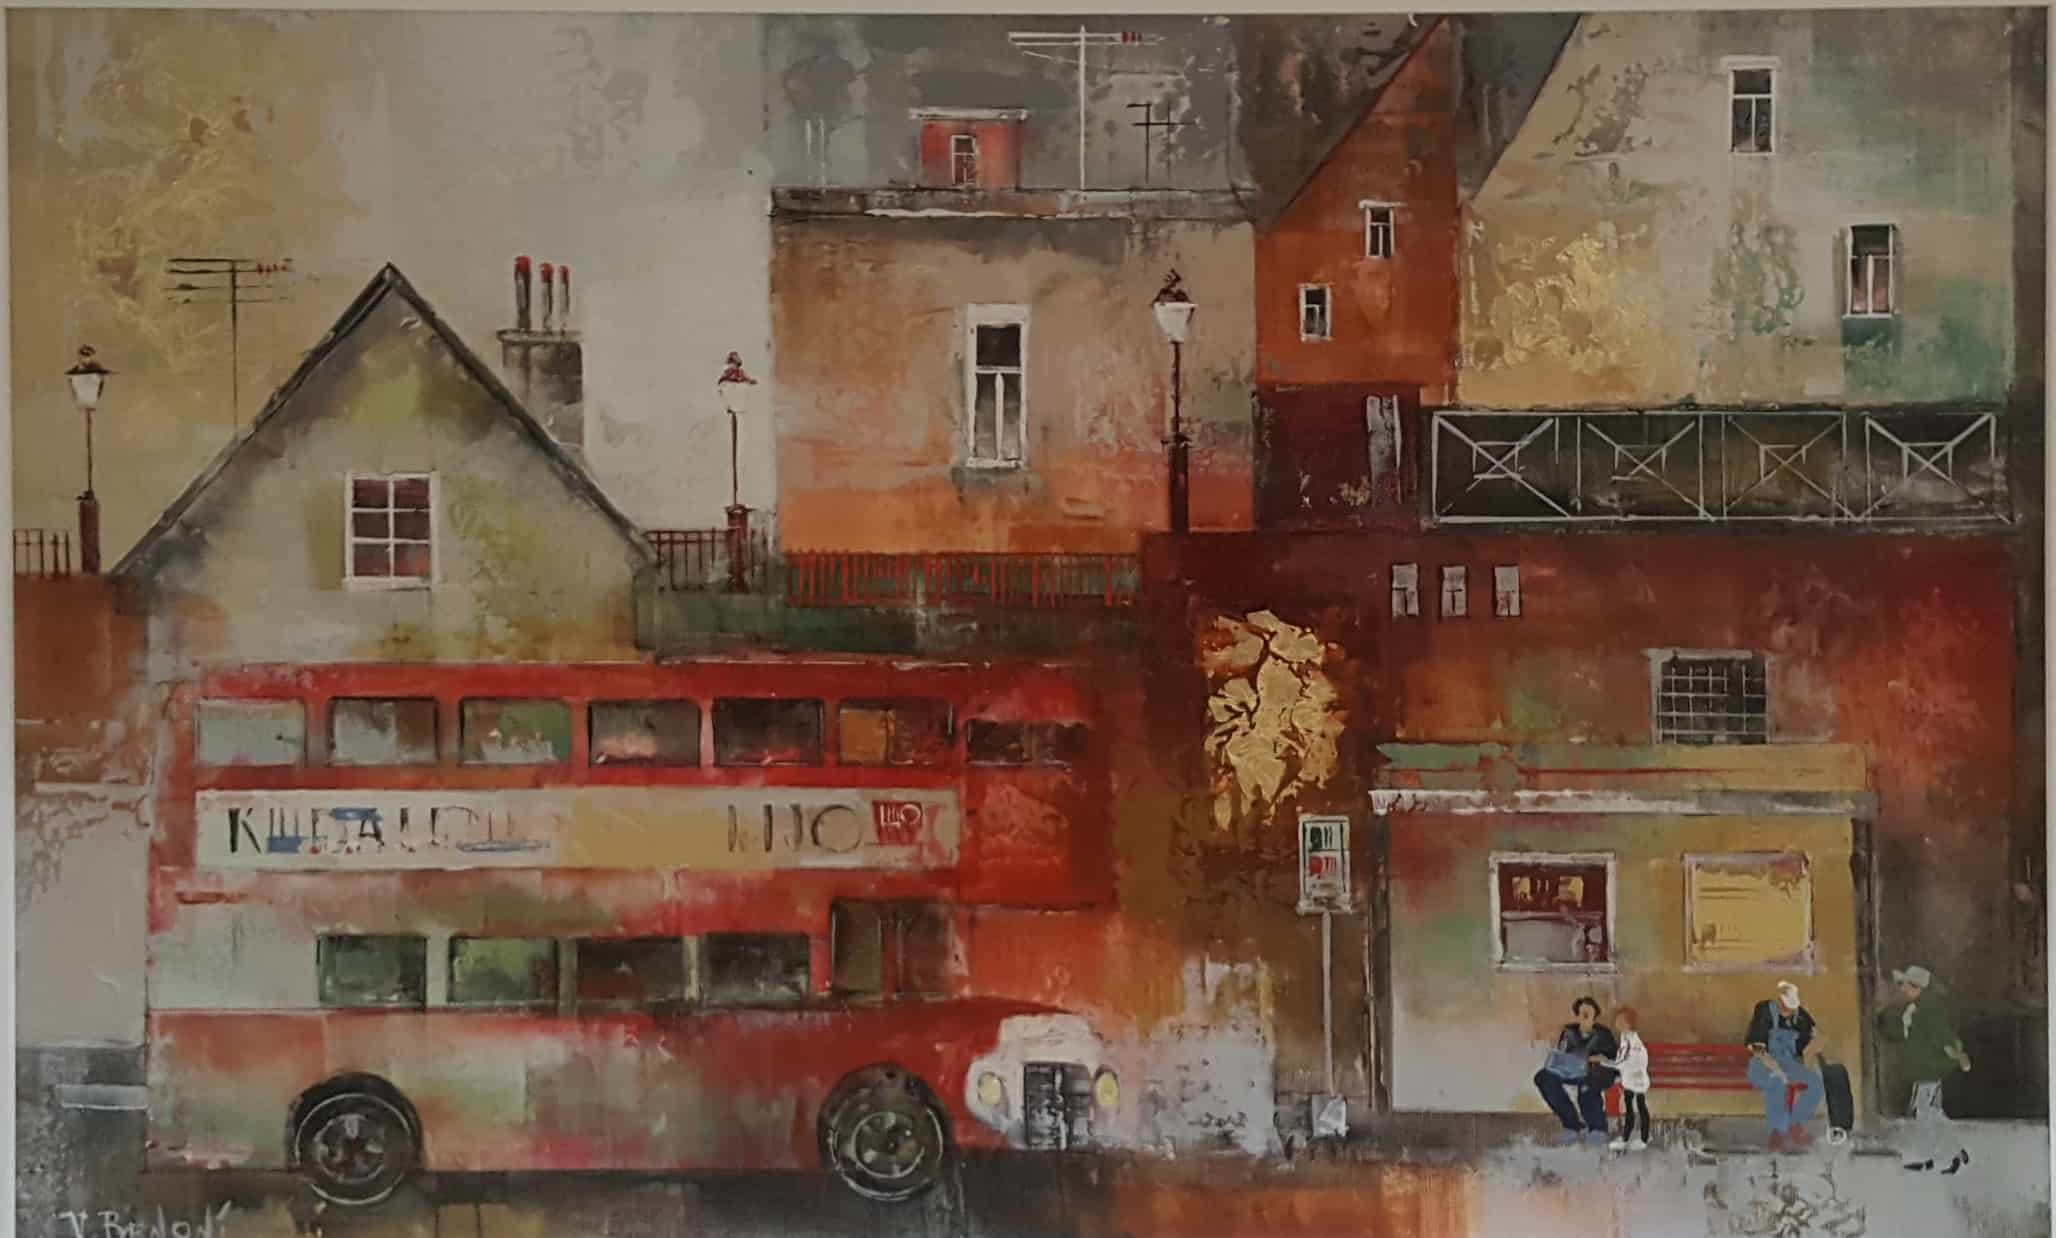 London Bus Station